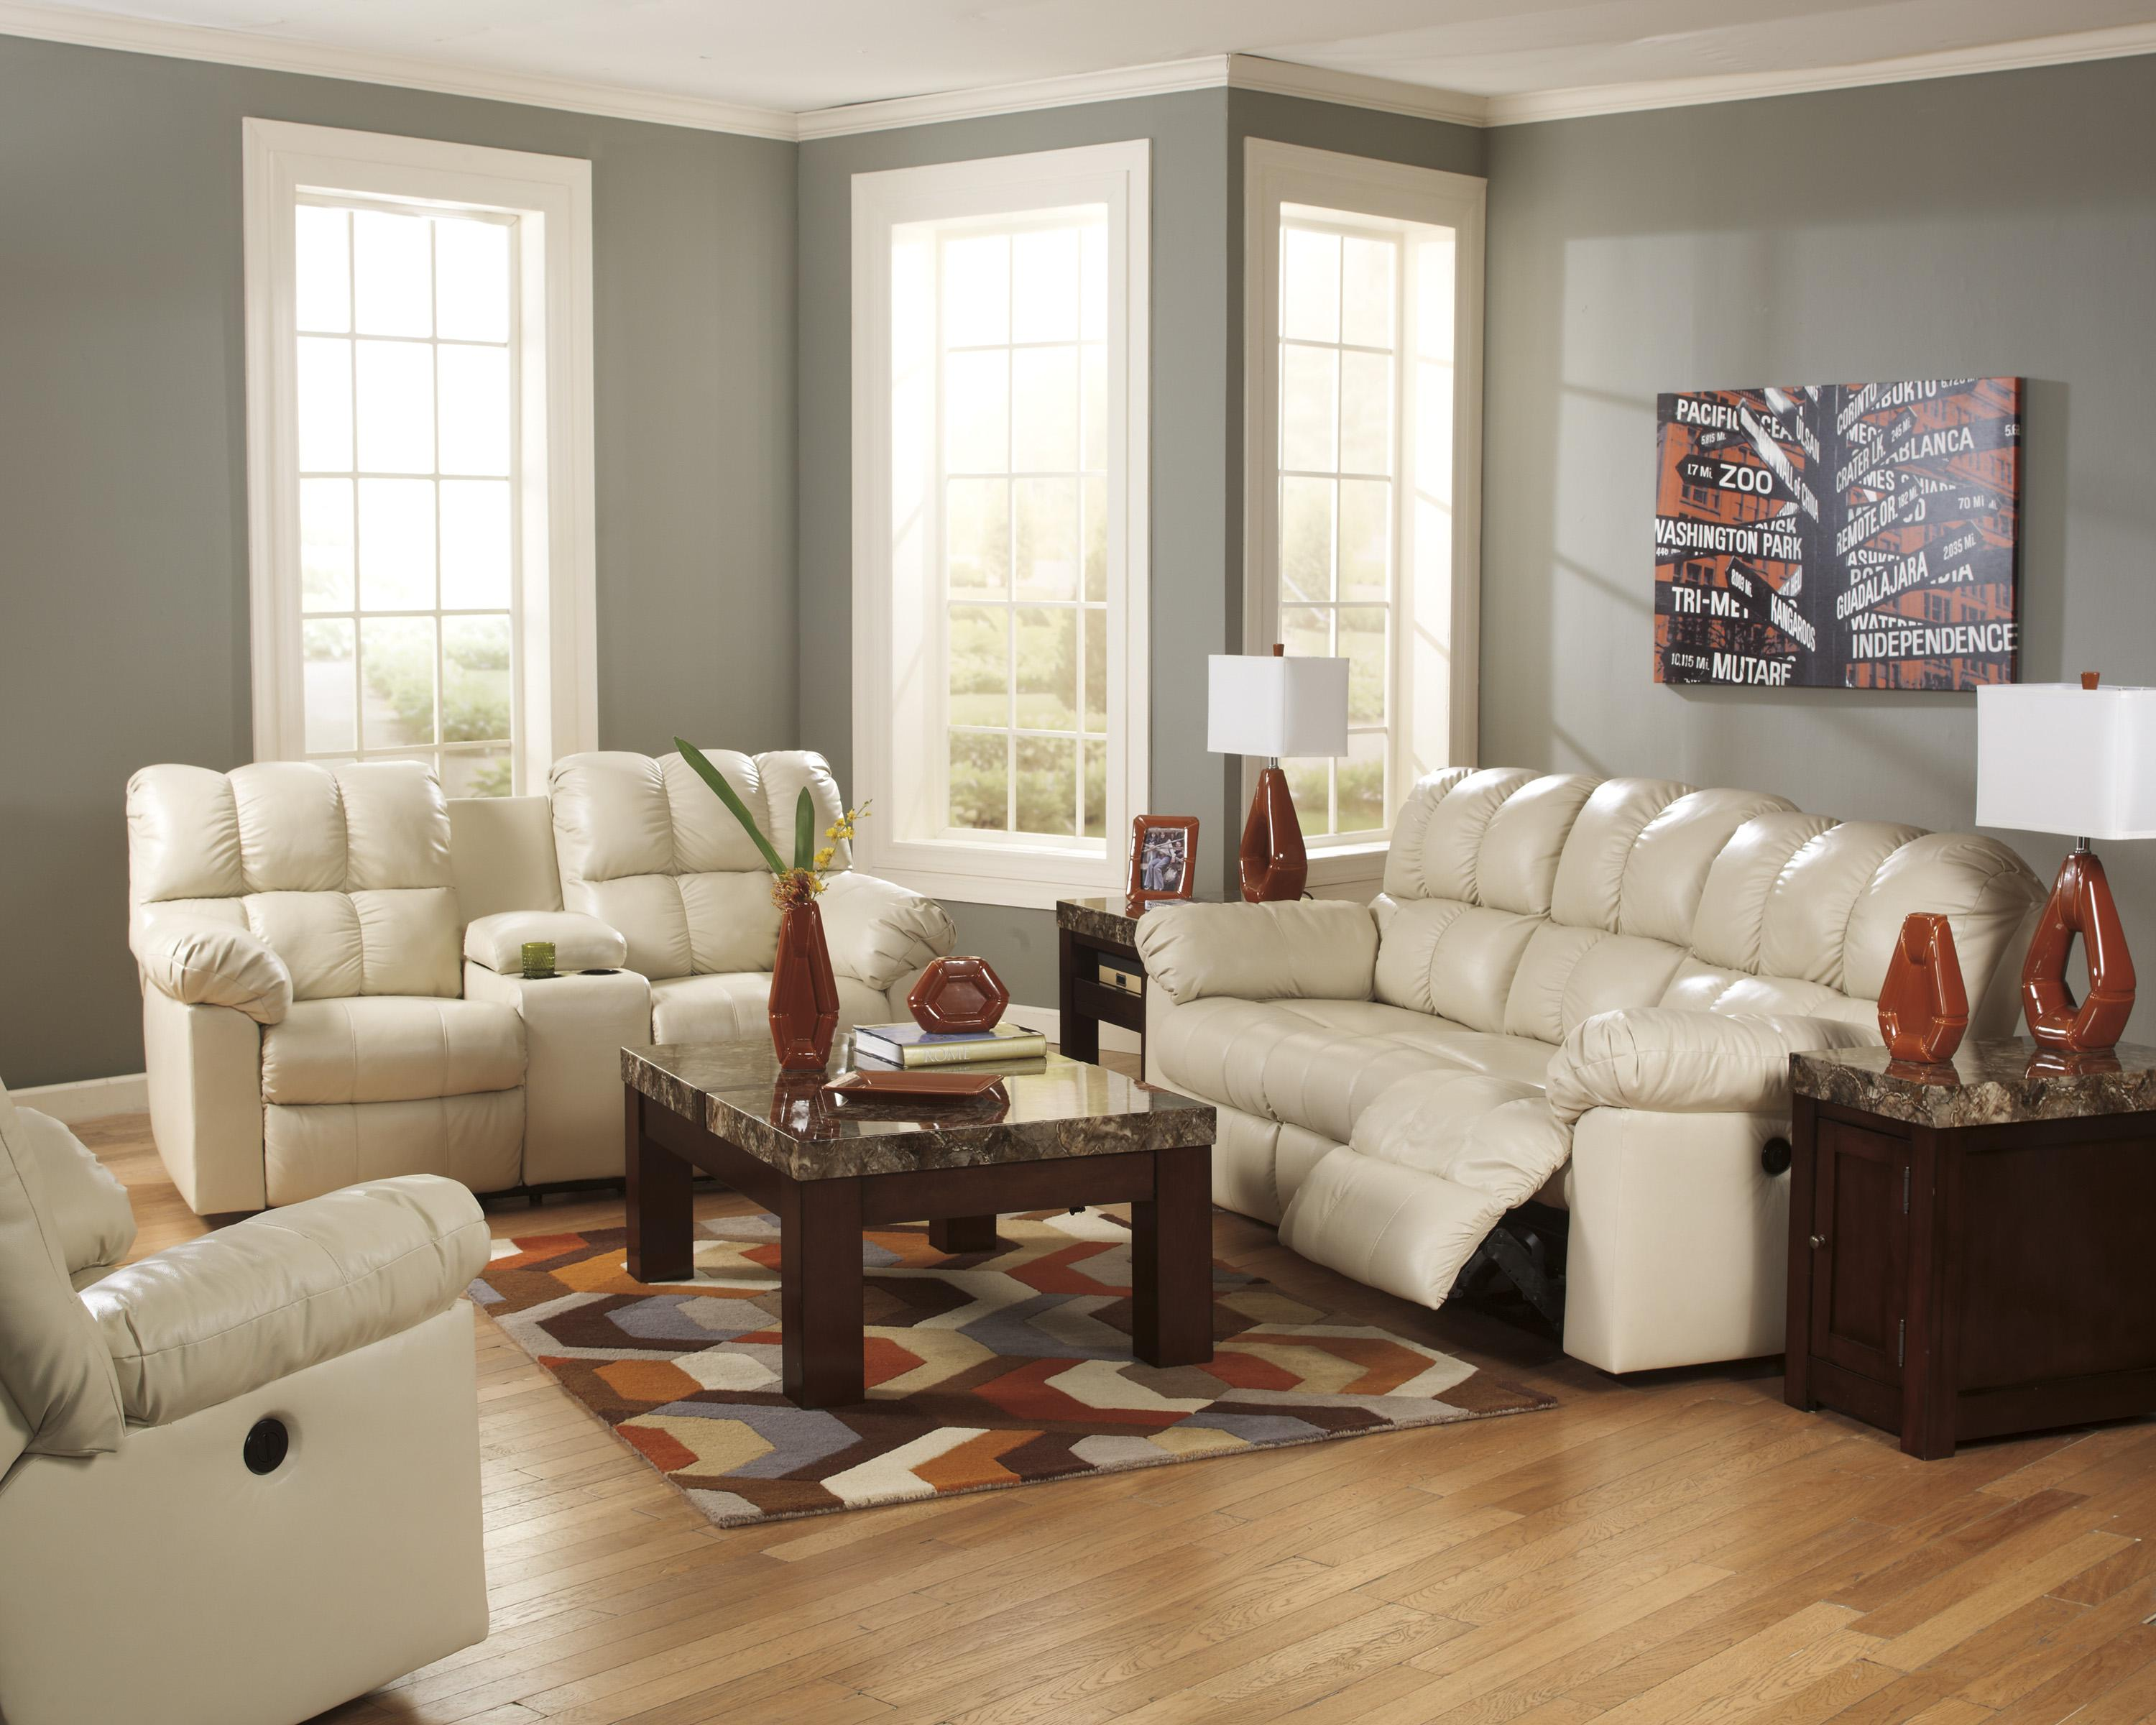 Signature Design by Ashley Kennard - Cream Reclining Living Room Group - Item Number: 29002 Living Room Group 5